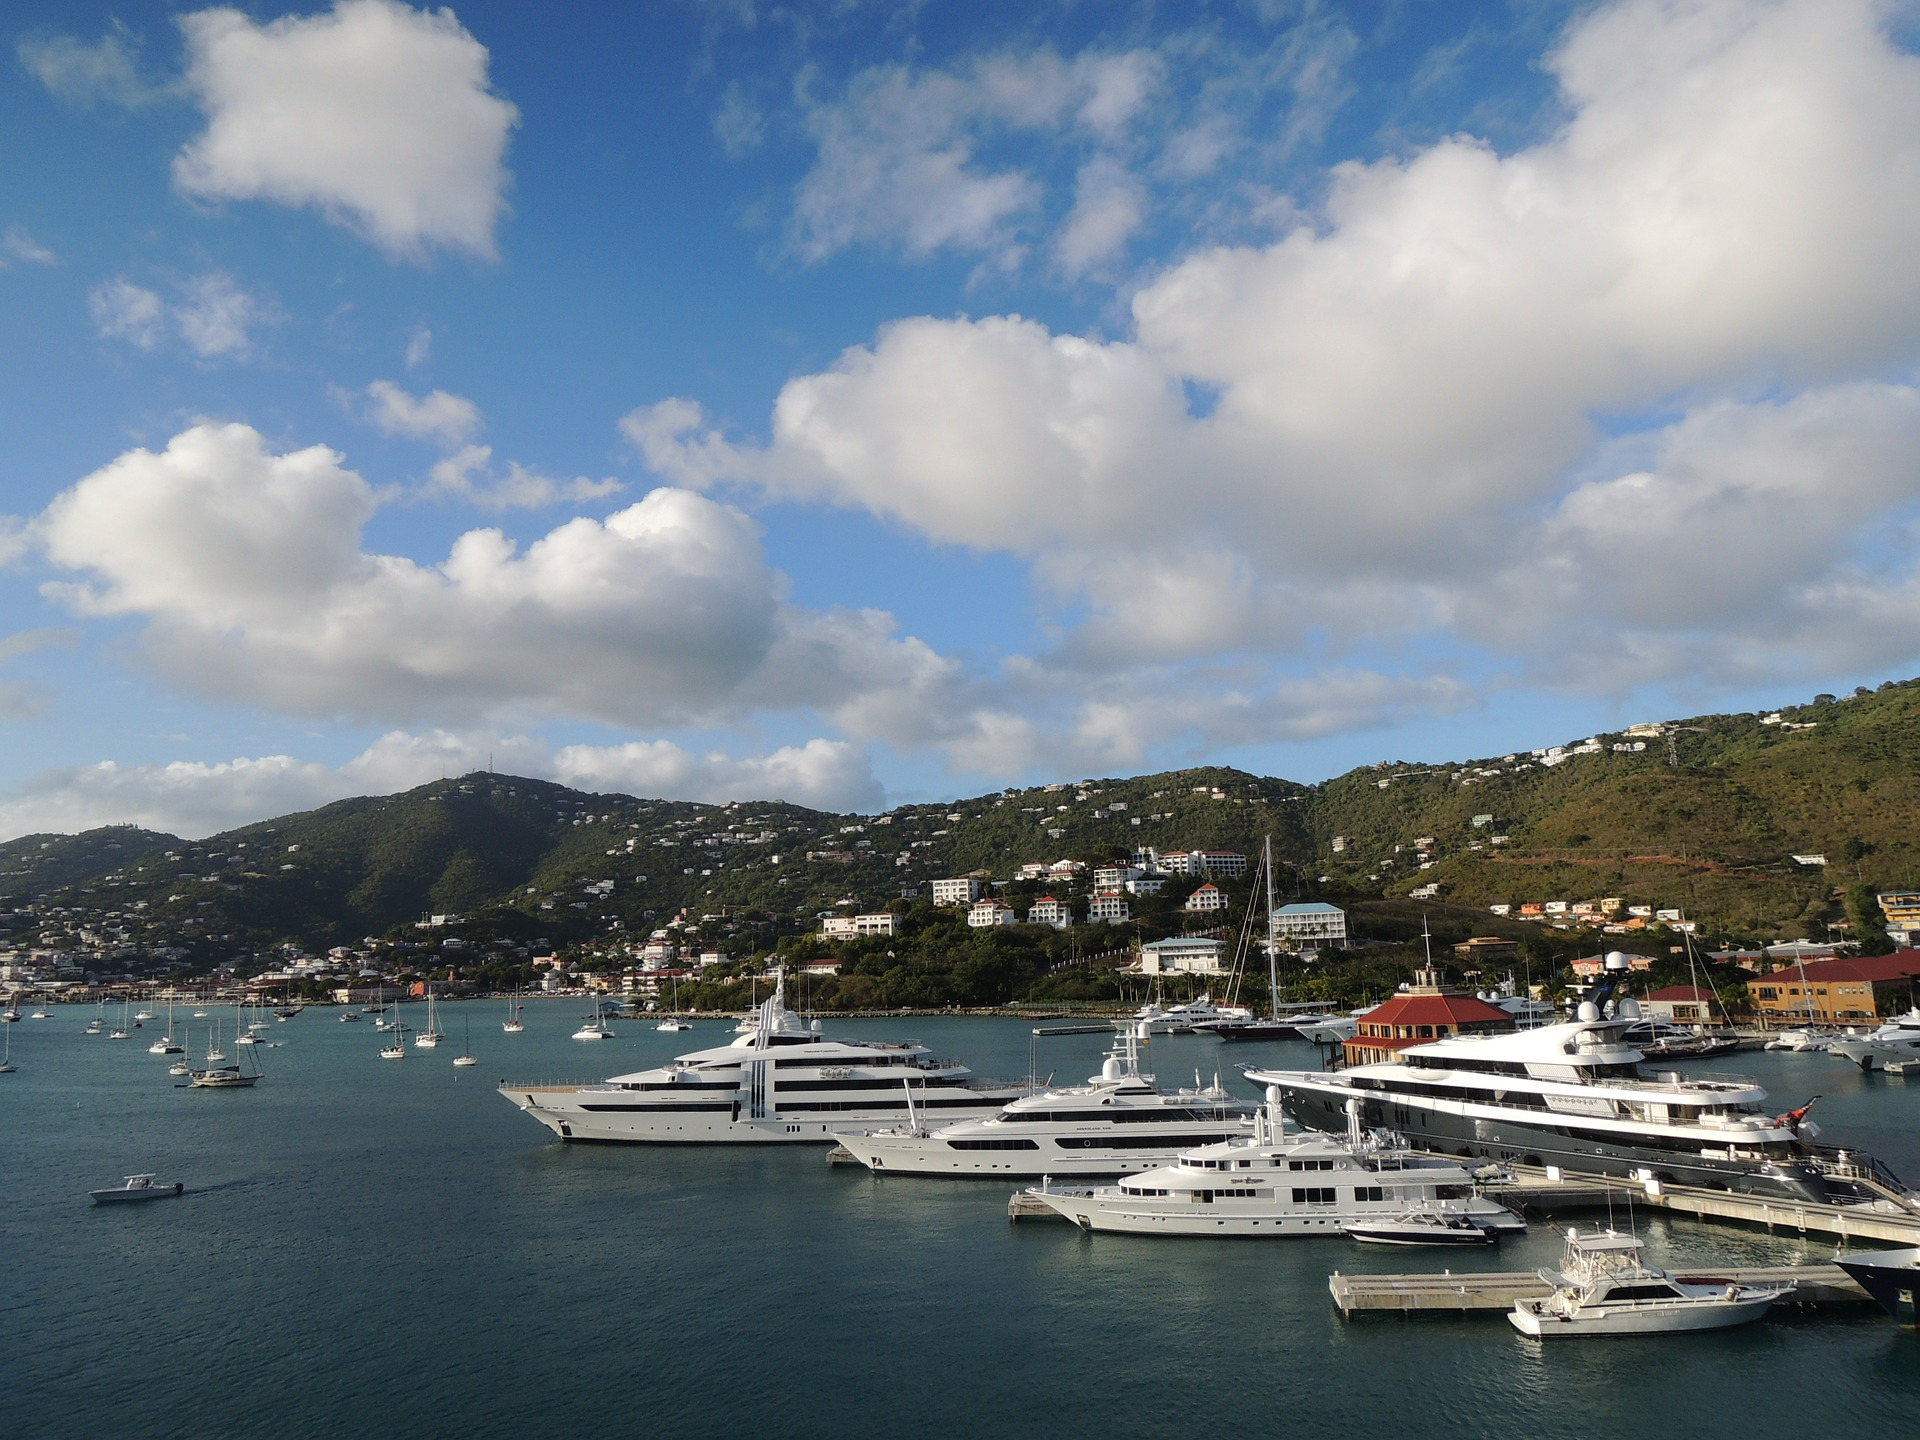 Boats at Charlotte Amalie - US Virgin Islands